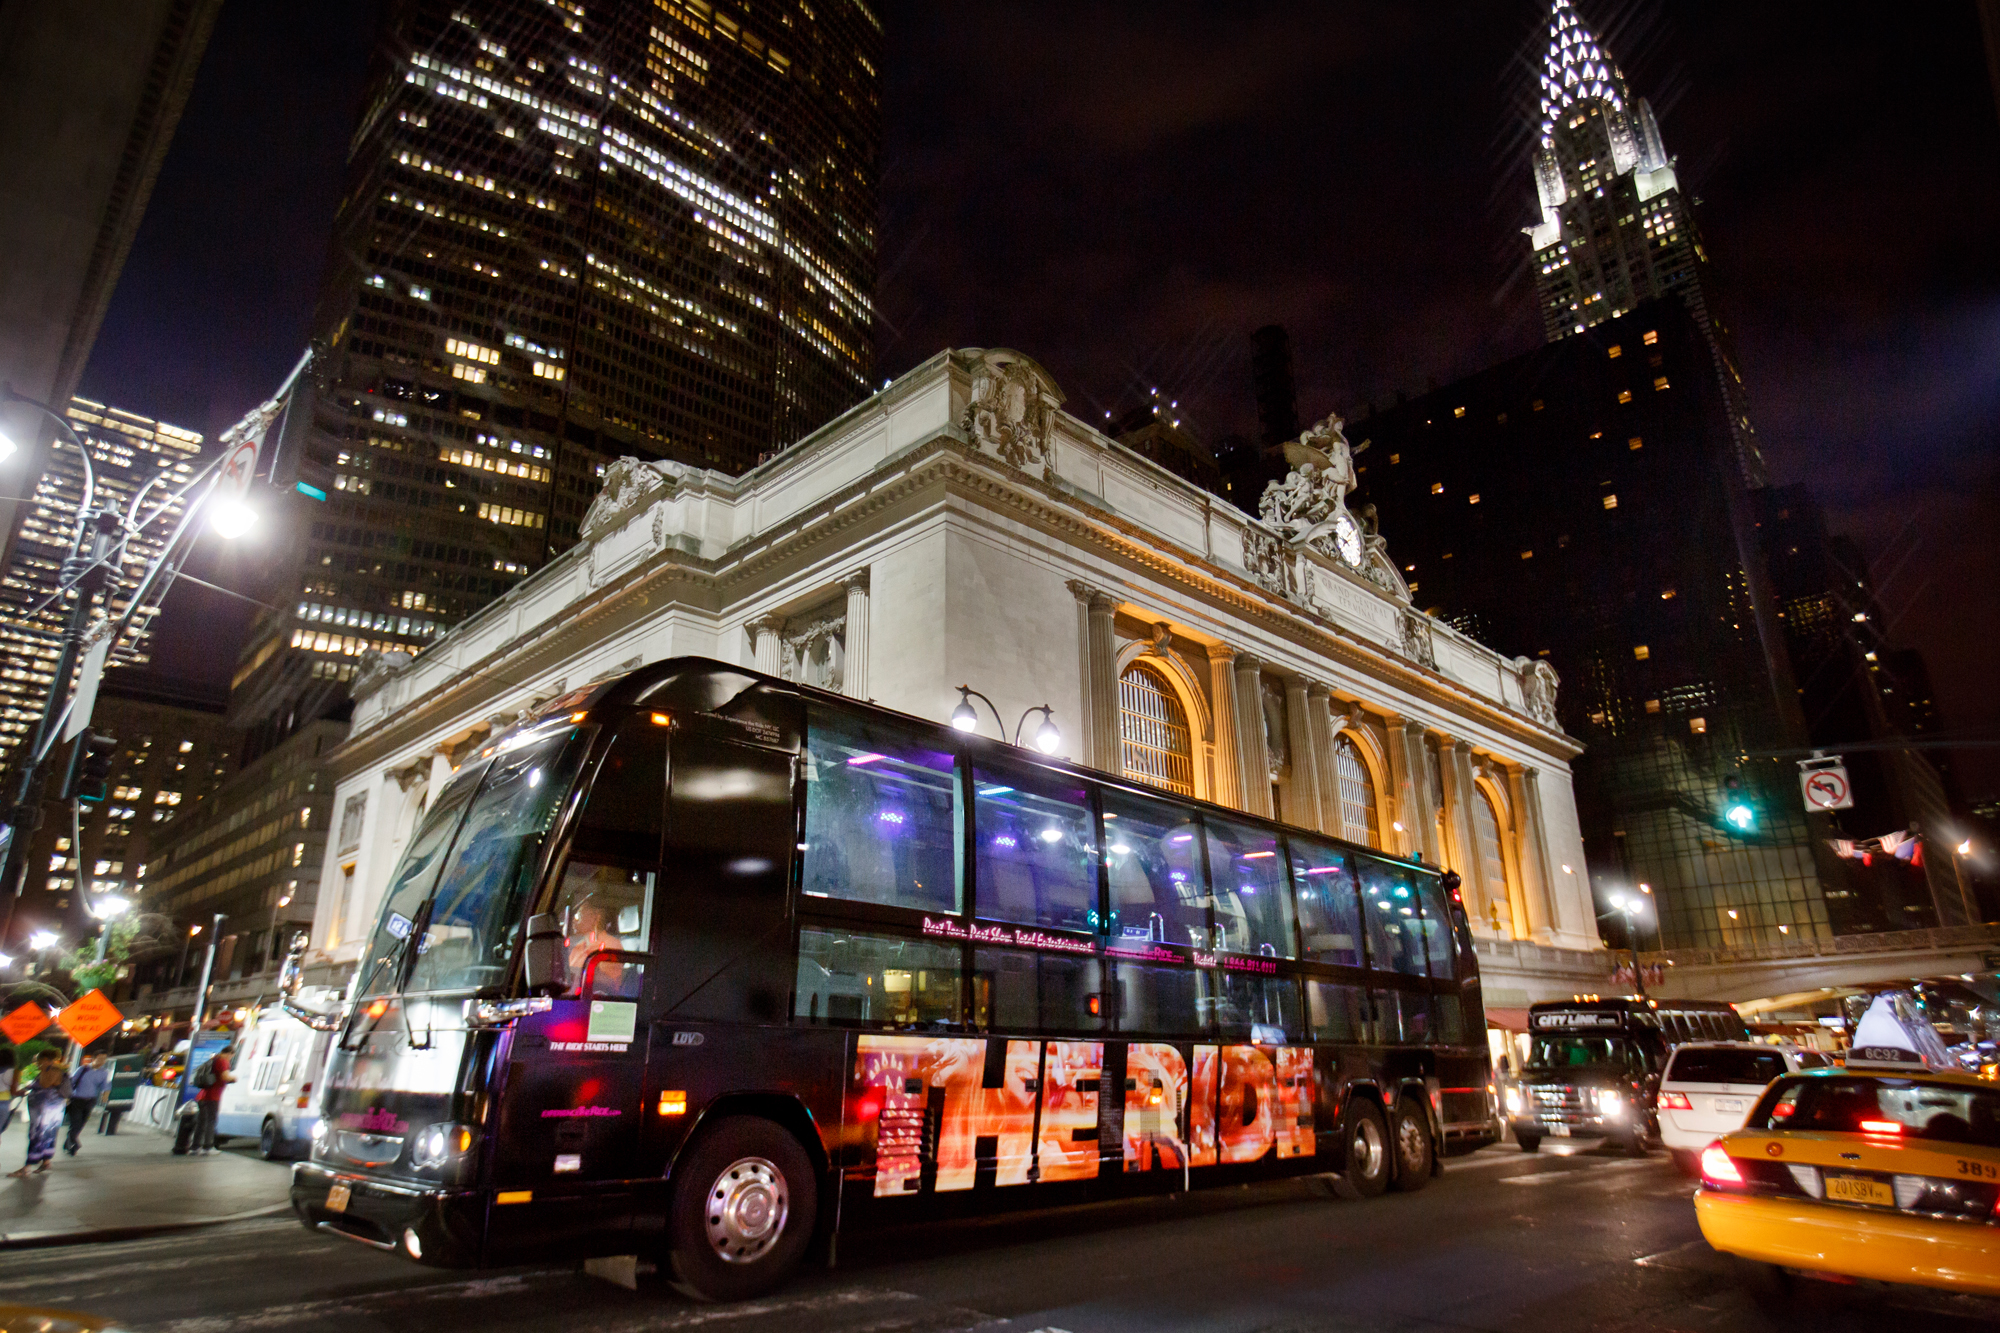 The interactive bus tour of New York City, The Ride.